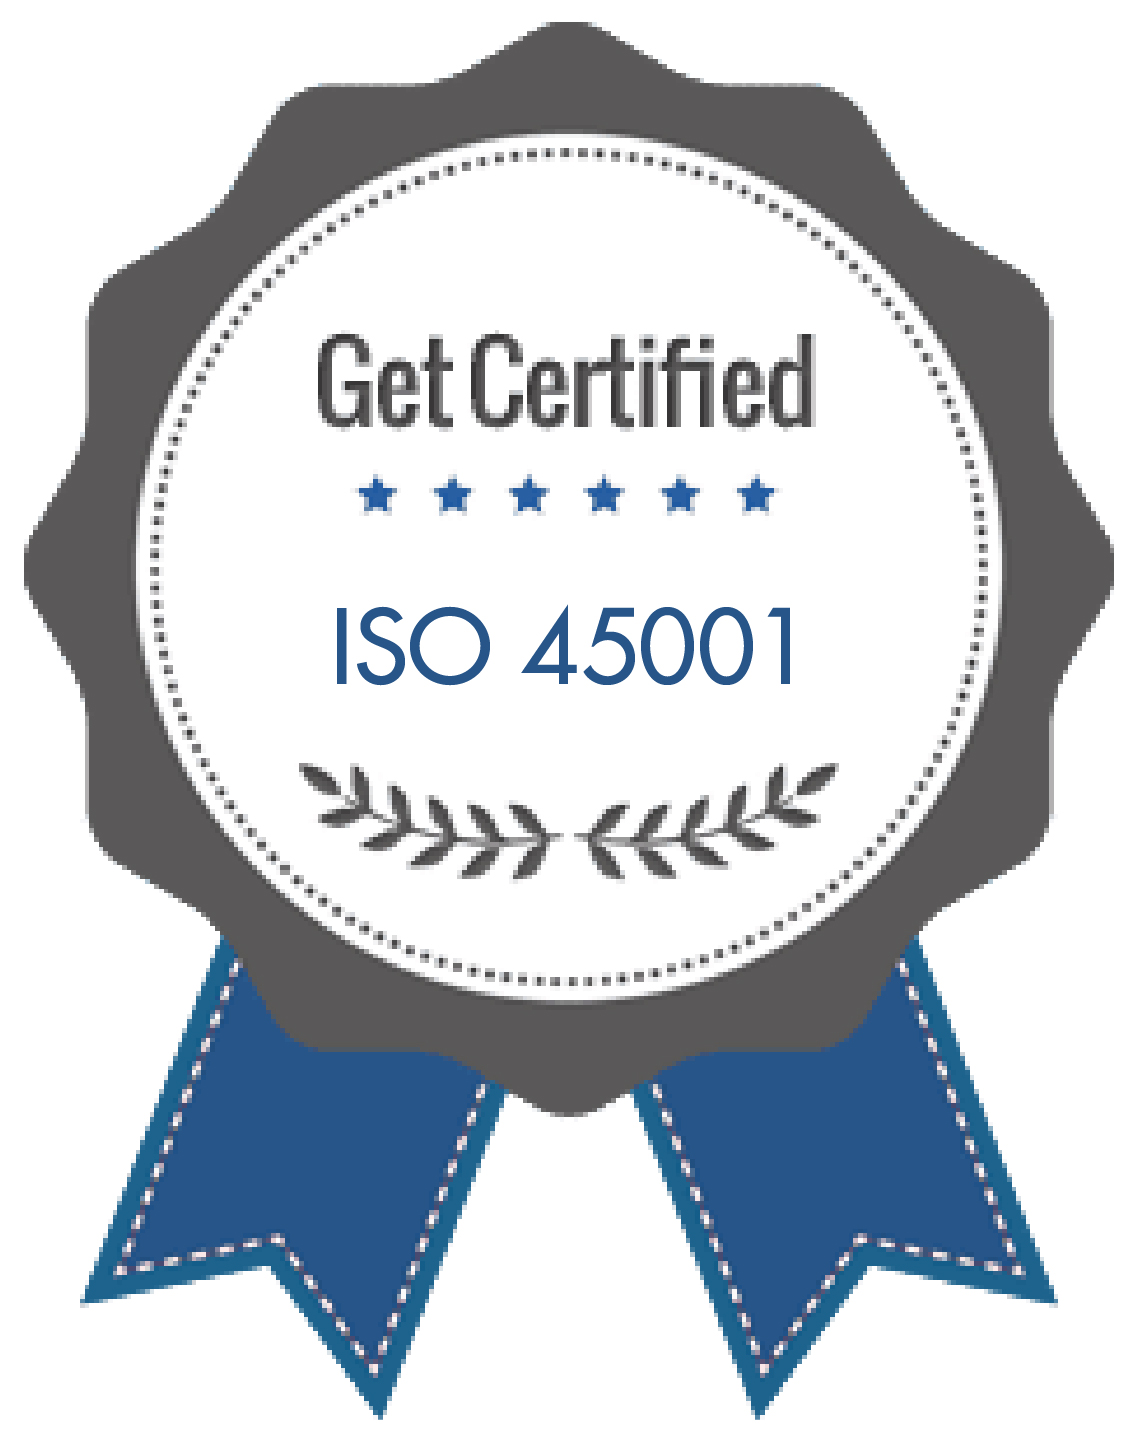 qrc-iso-45001-ribbon-icon-01